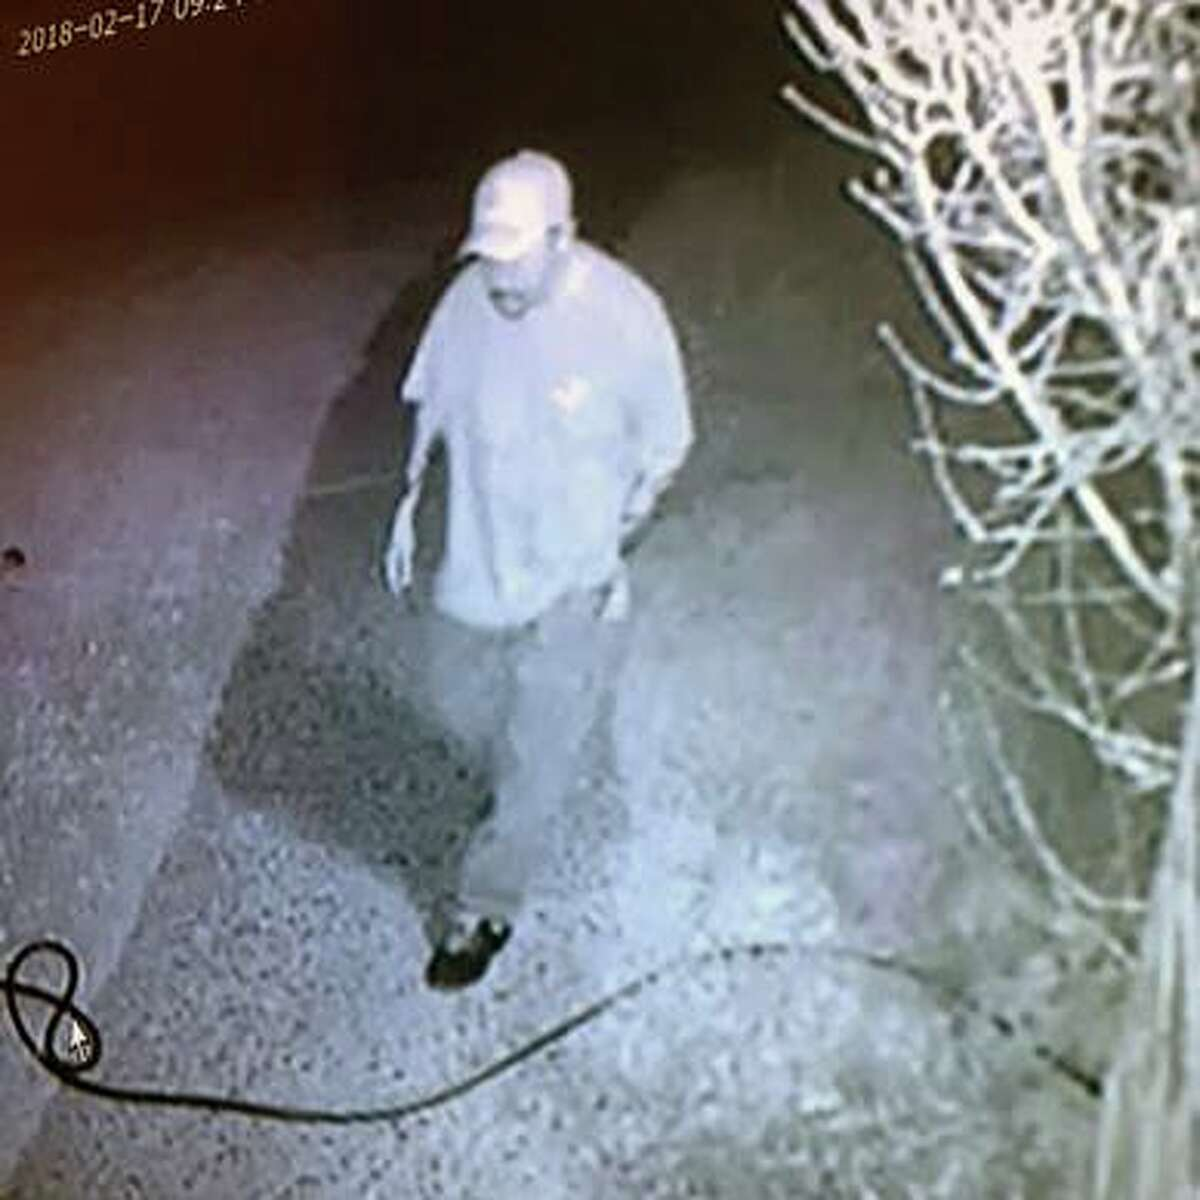 Midland Crime Stoppers and the Midland Police Department need help in identifying the suspect involved in a sexual assault The suspect appears to be a Hispanic male in his 30s. He is about 5 foot 9, weighs about 200 pounds and has a goatee.